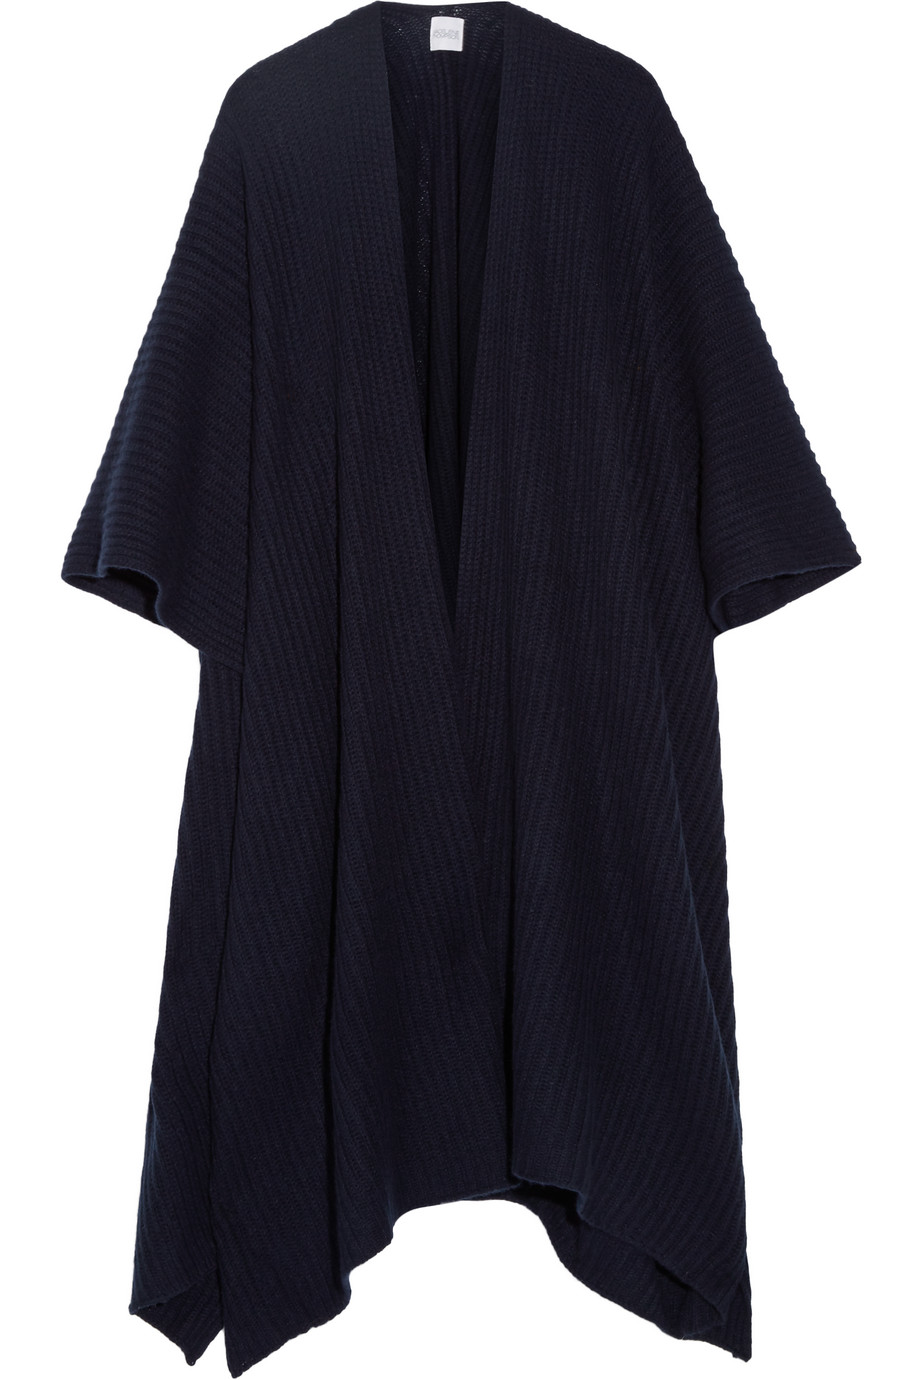 Ribbed Cashmere Wrap, Madeleine Thompson, Navy, Women's